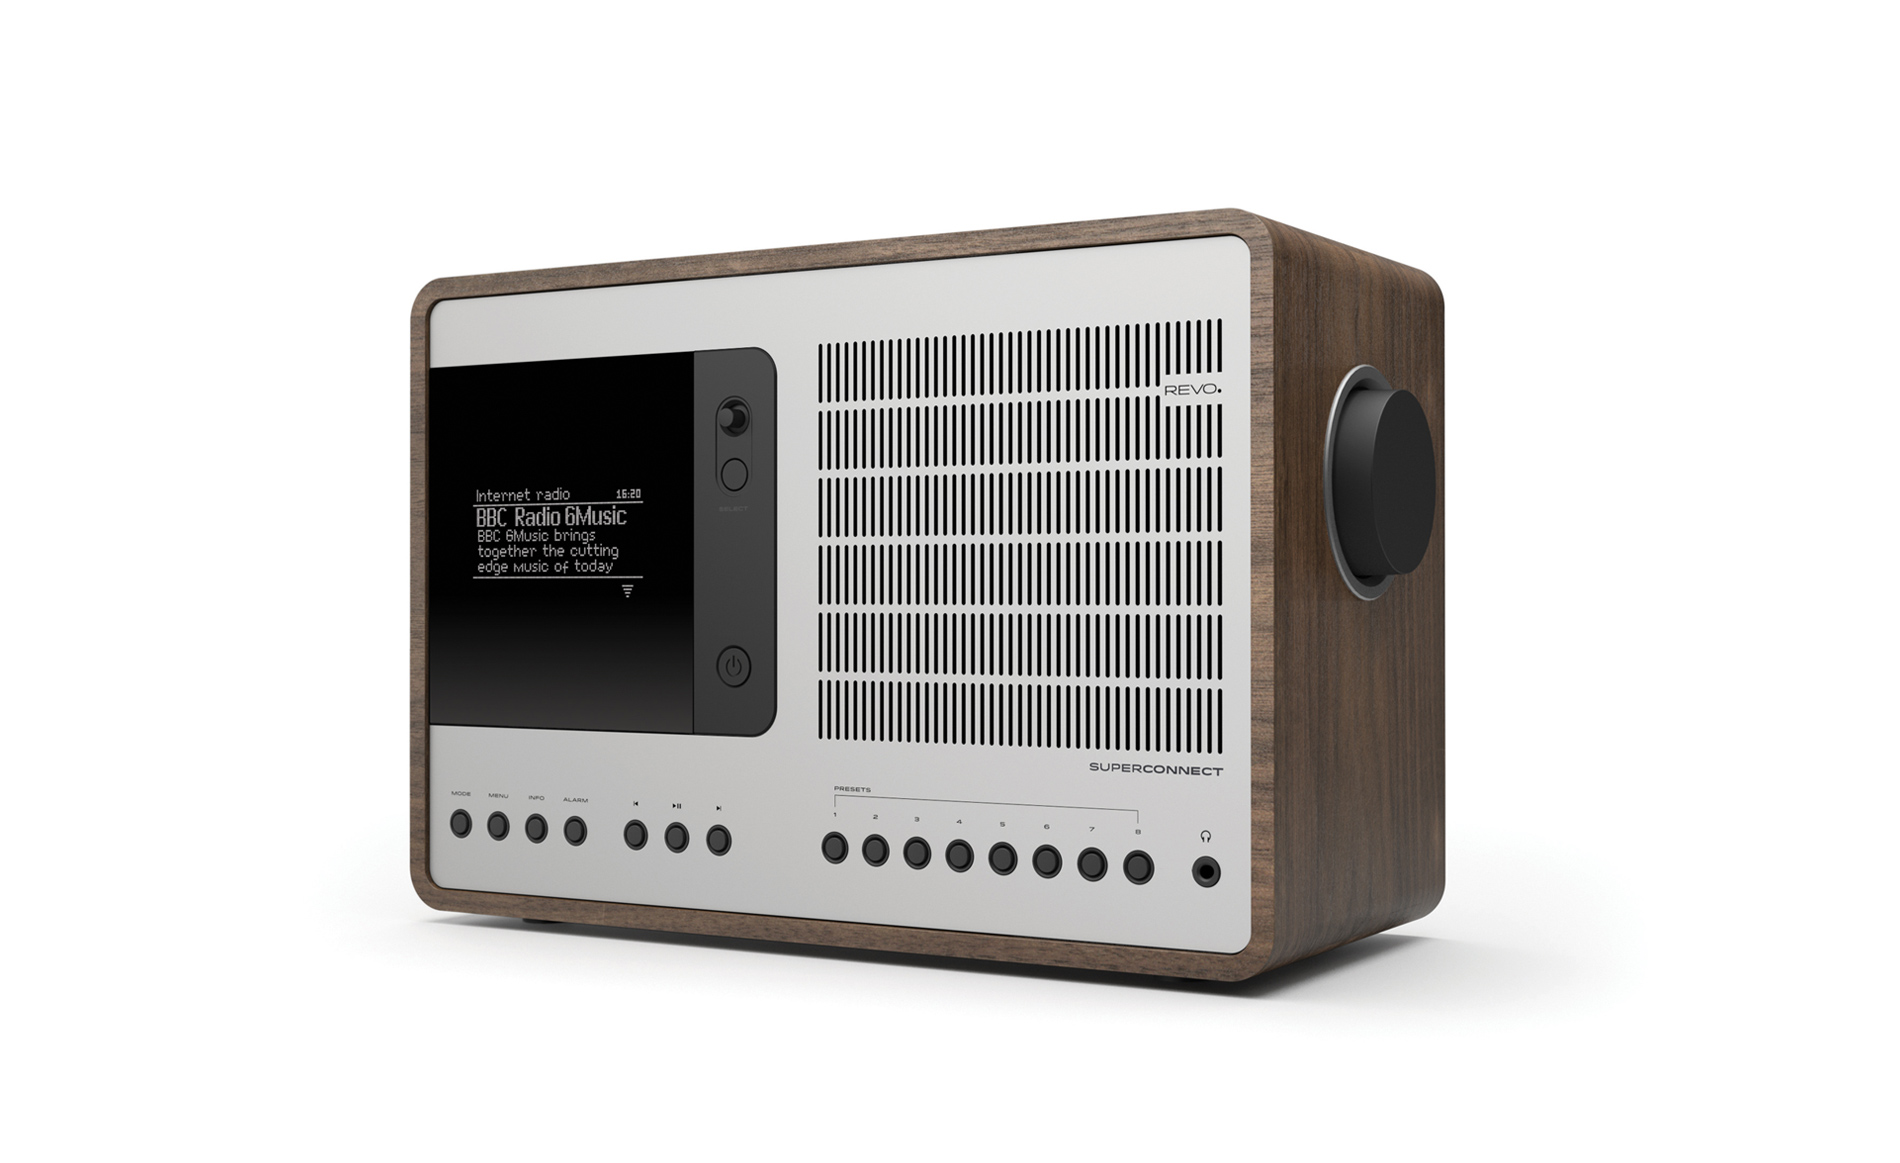 Superconnect Products Revo Award Winning Digital Radio And Fm For Sale 1 20 High Quality Images Are Walnut Silver